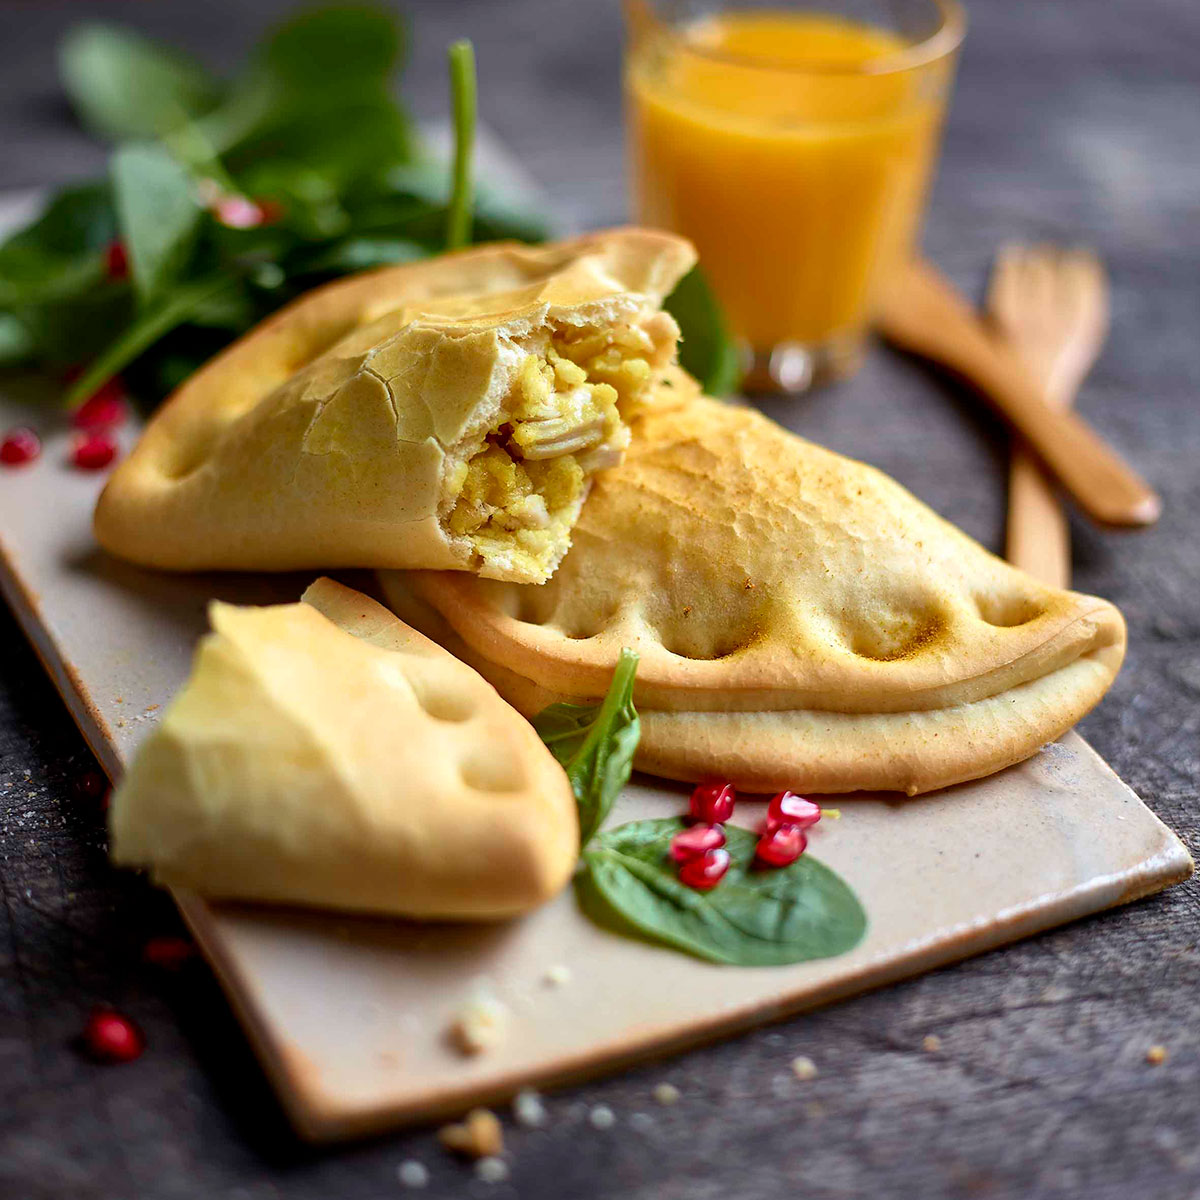 Chicken, onions and curry calzone